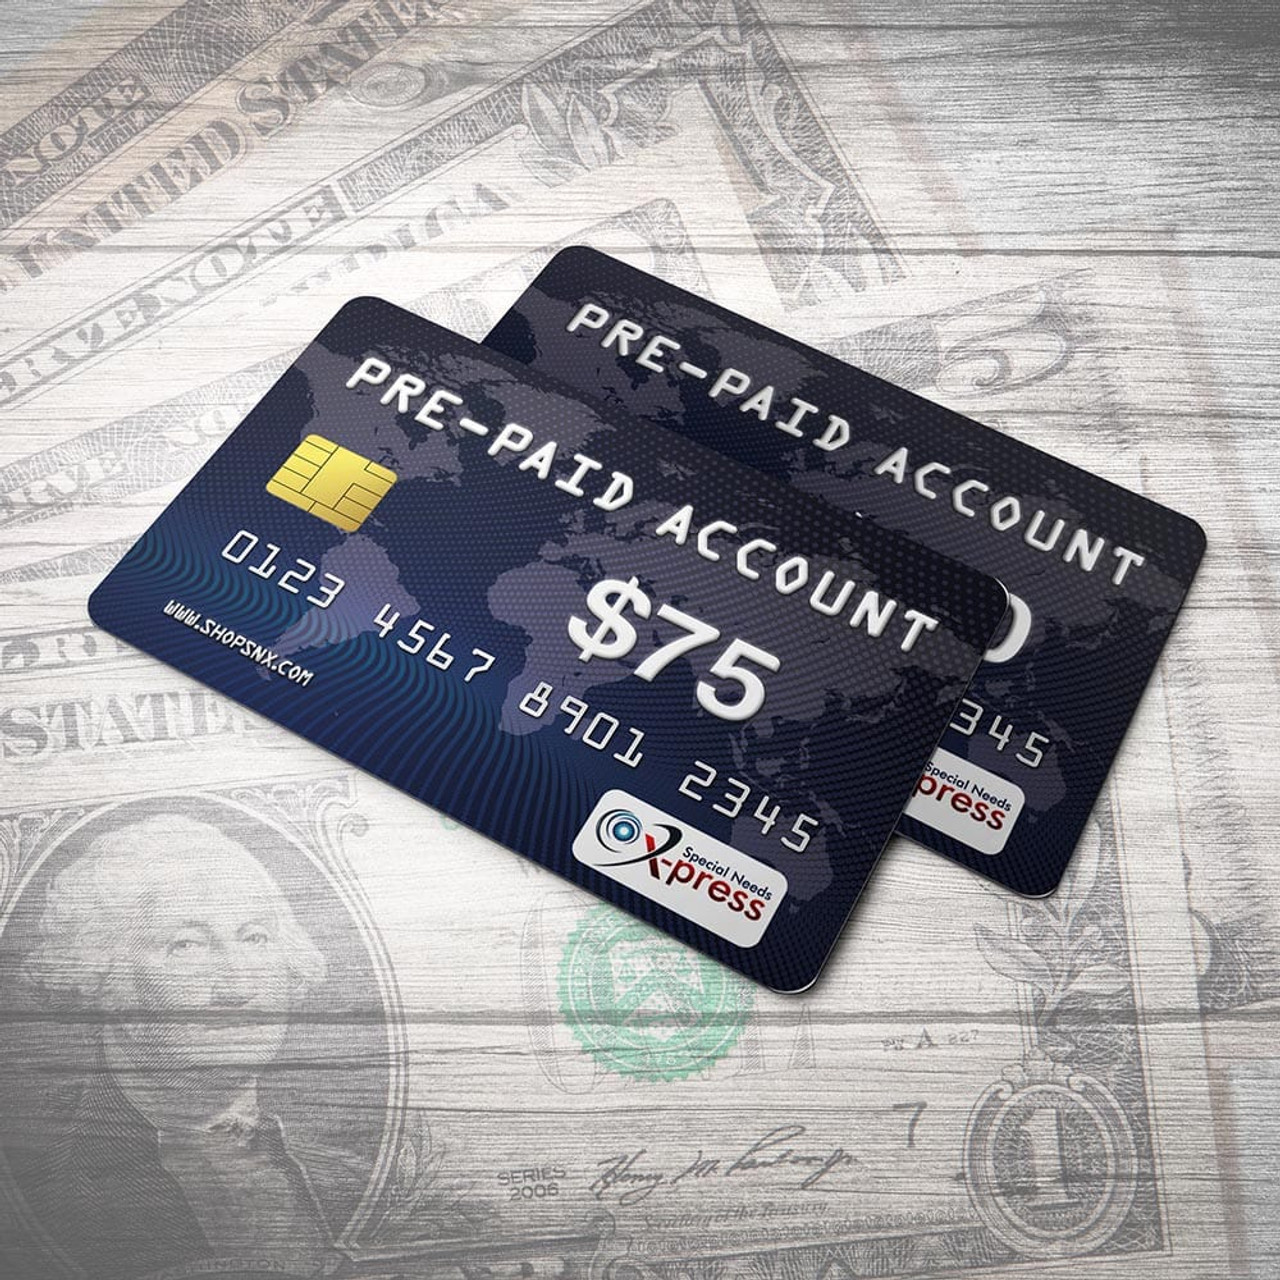 Pre-Paid Account For $75.00